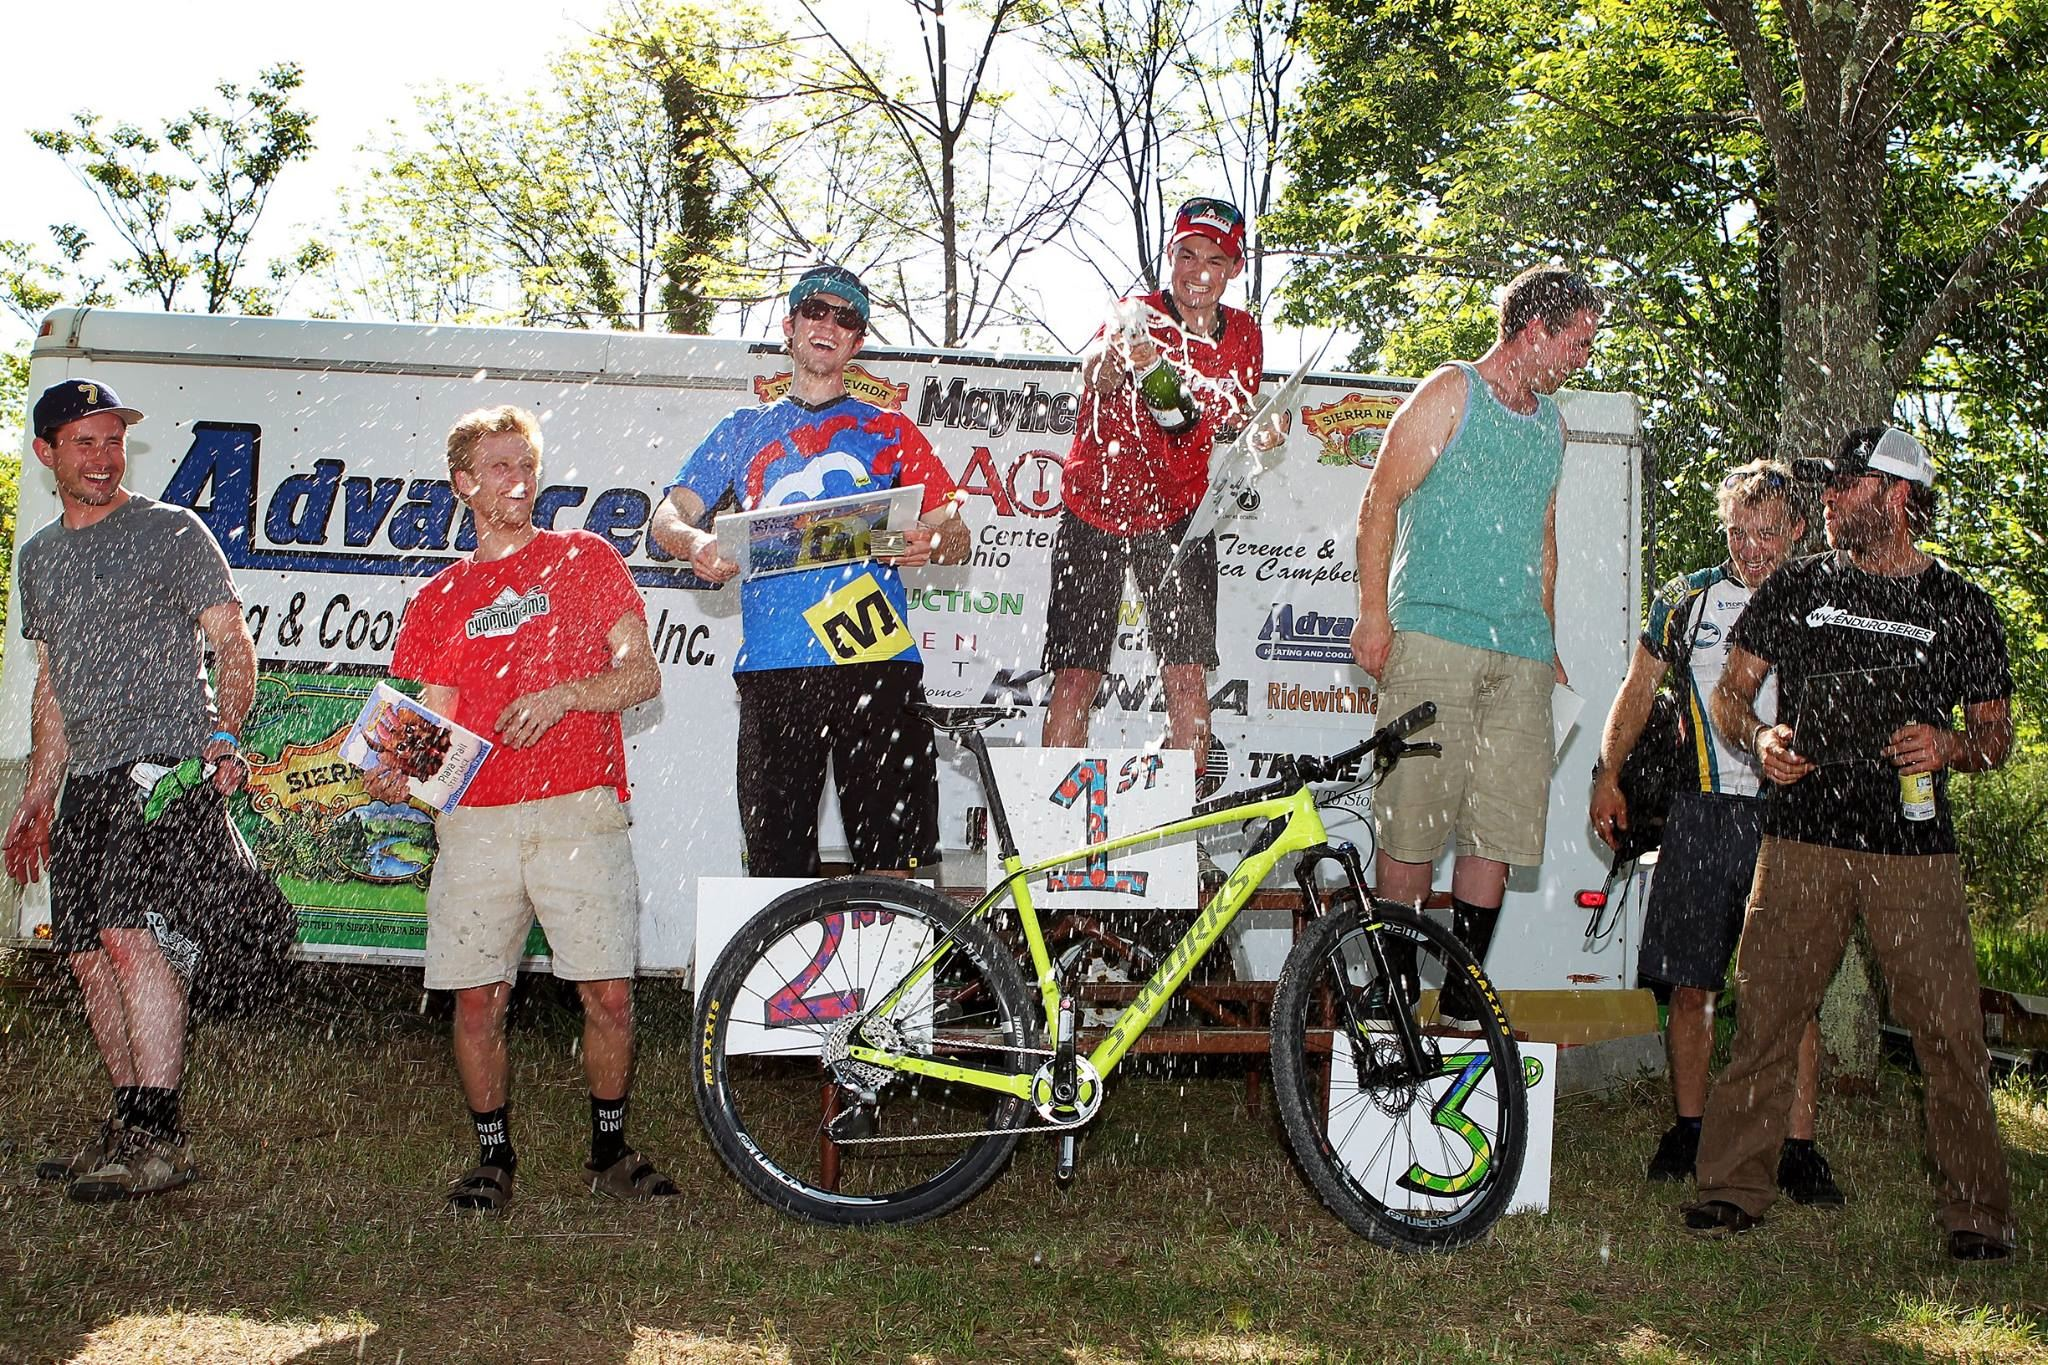 Appalachian Outdoor Adventures - International Mountain Biking Association